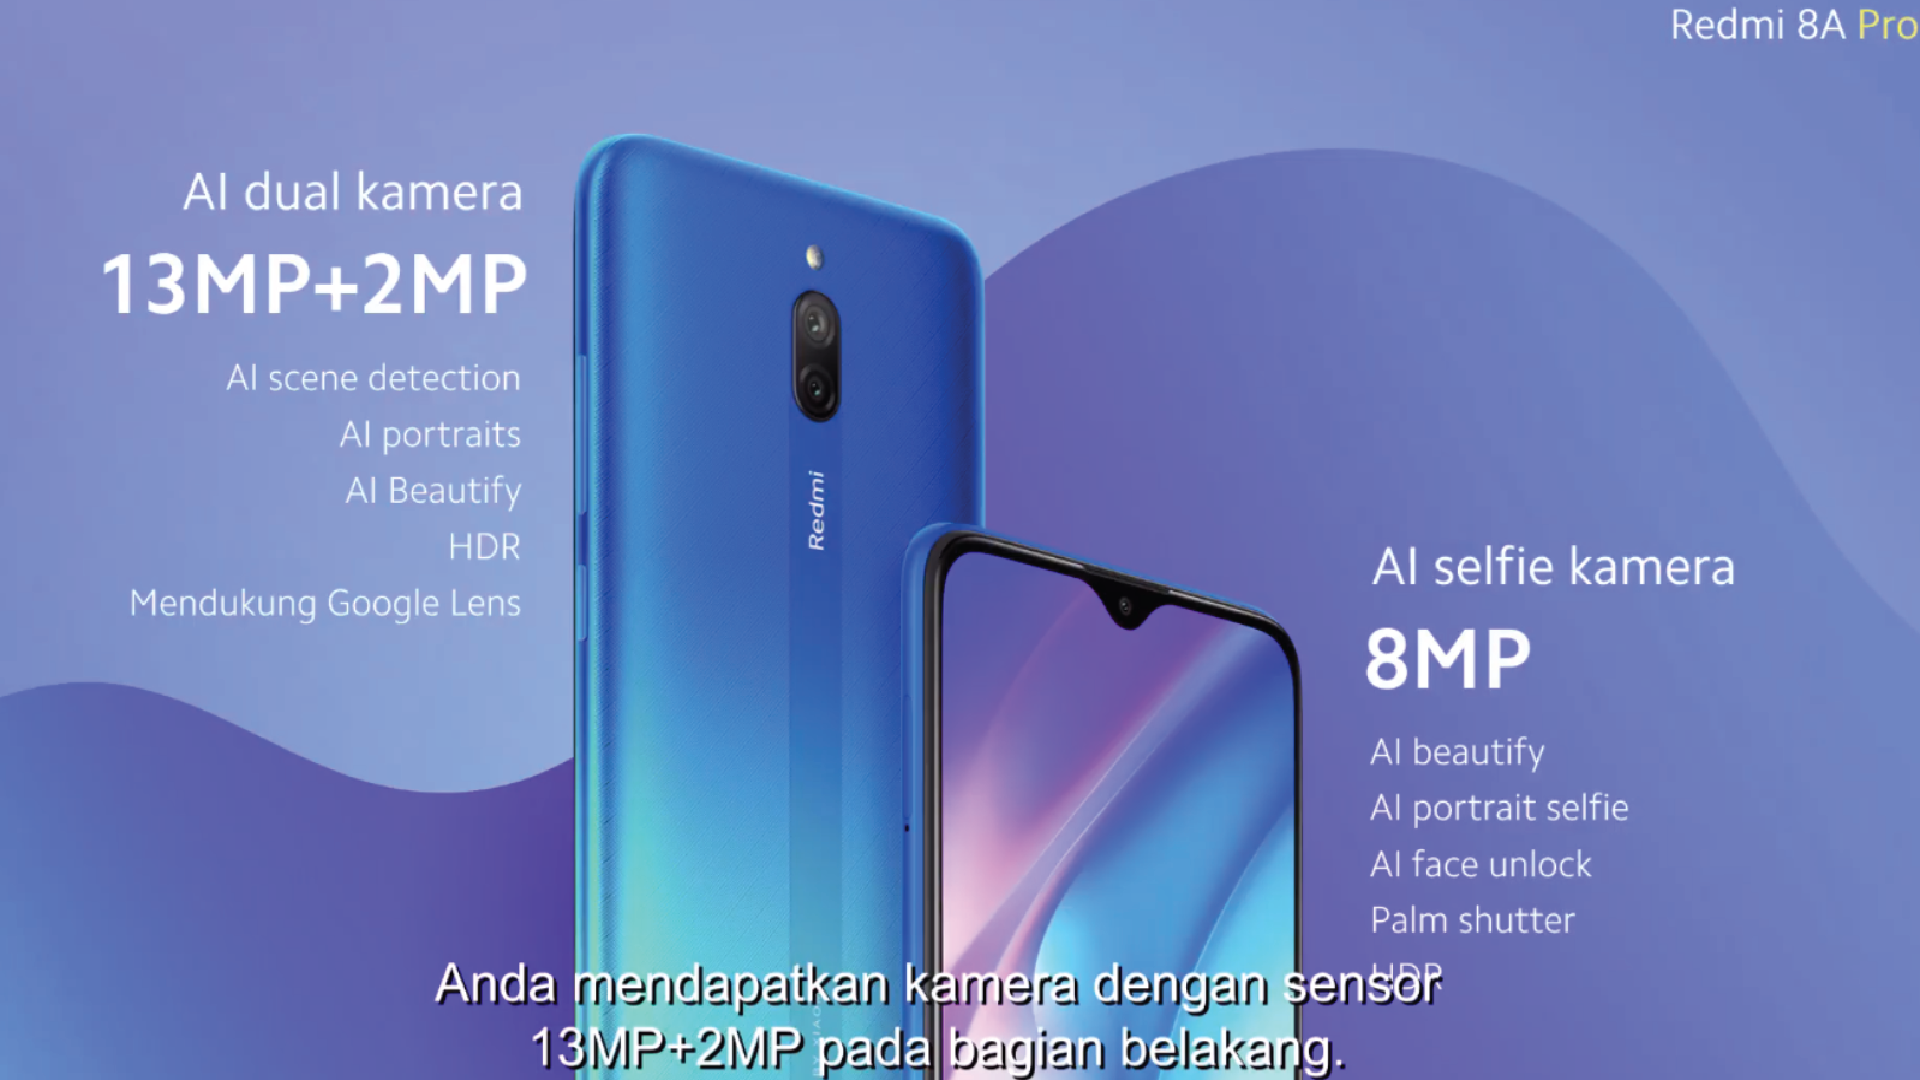 Xiaomi Redmi 8A Pro Specifications